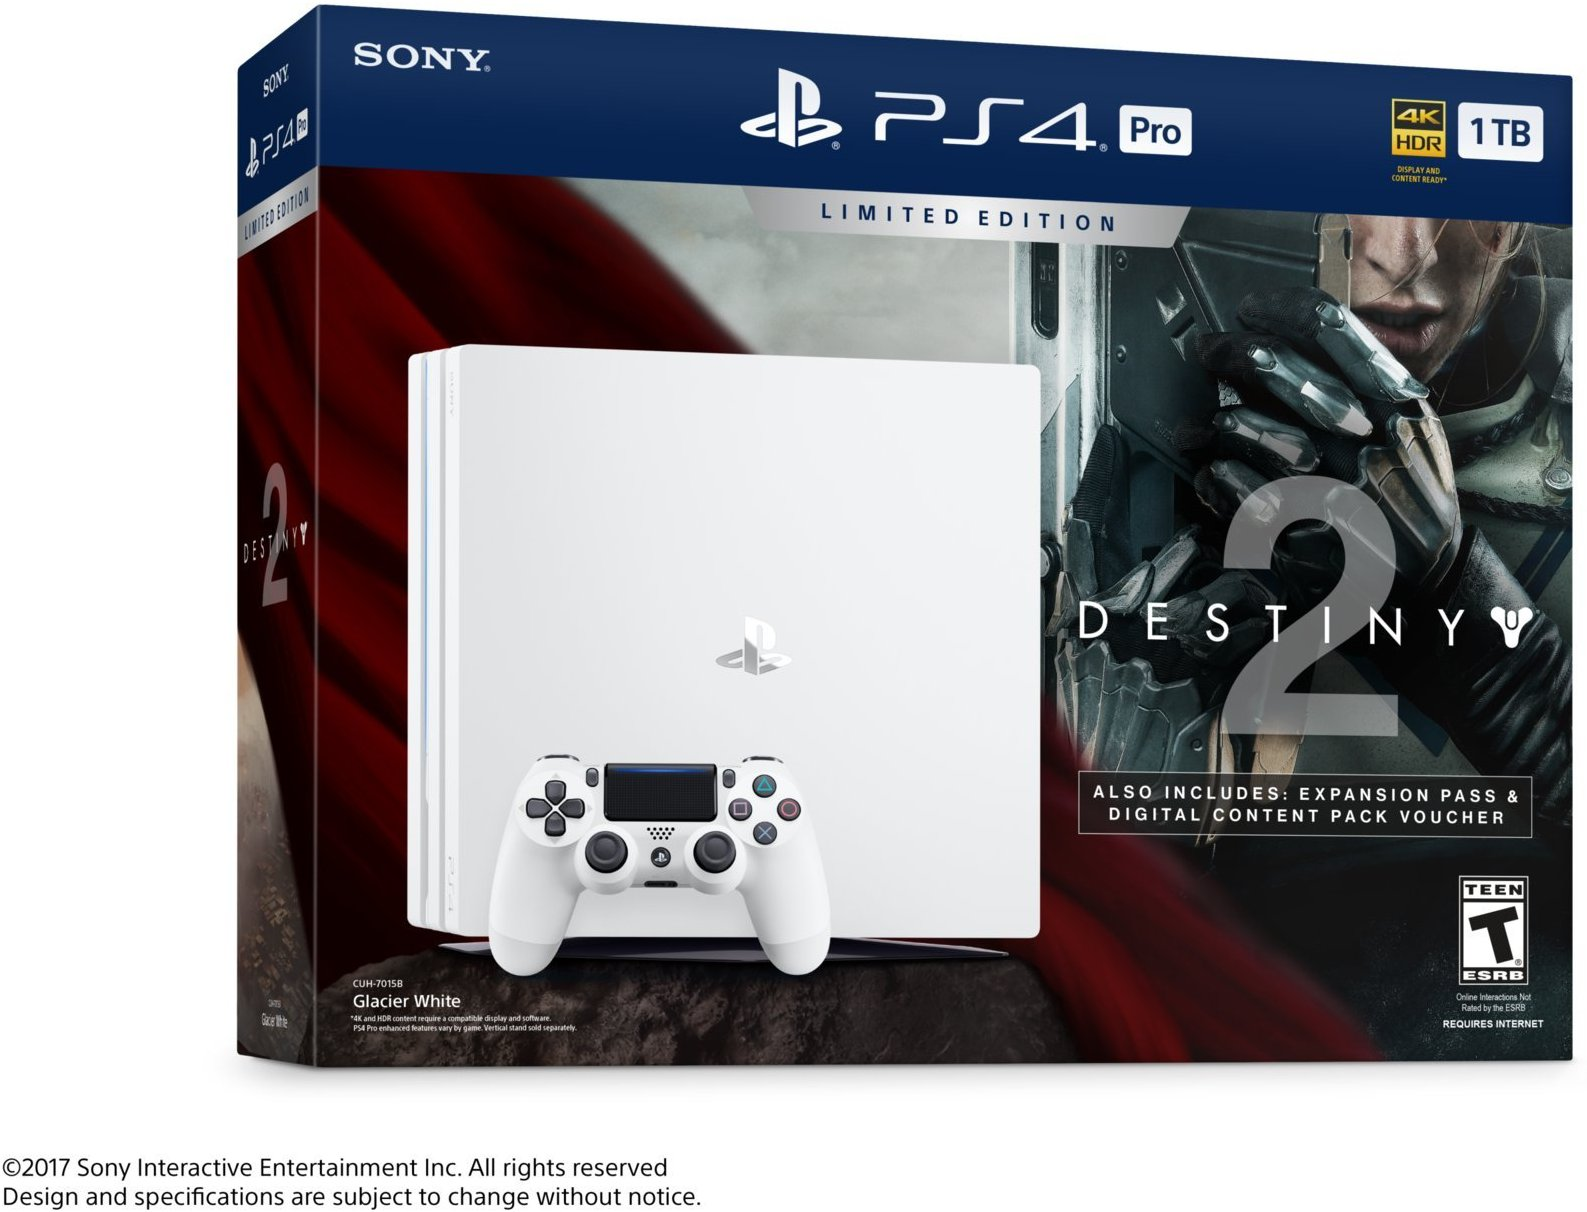 may-choi-game-sony-ps4-pro-1tb-destiny-2-bundle